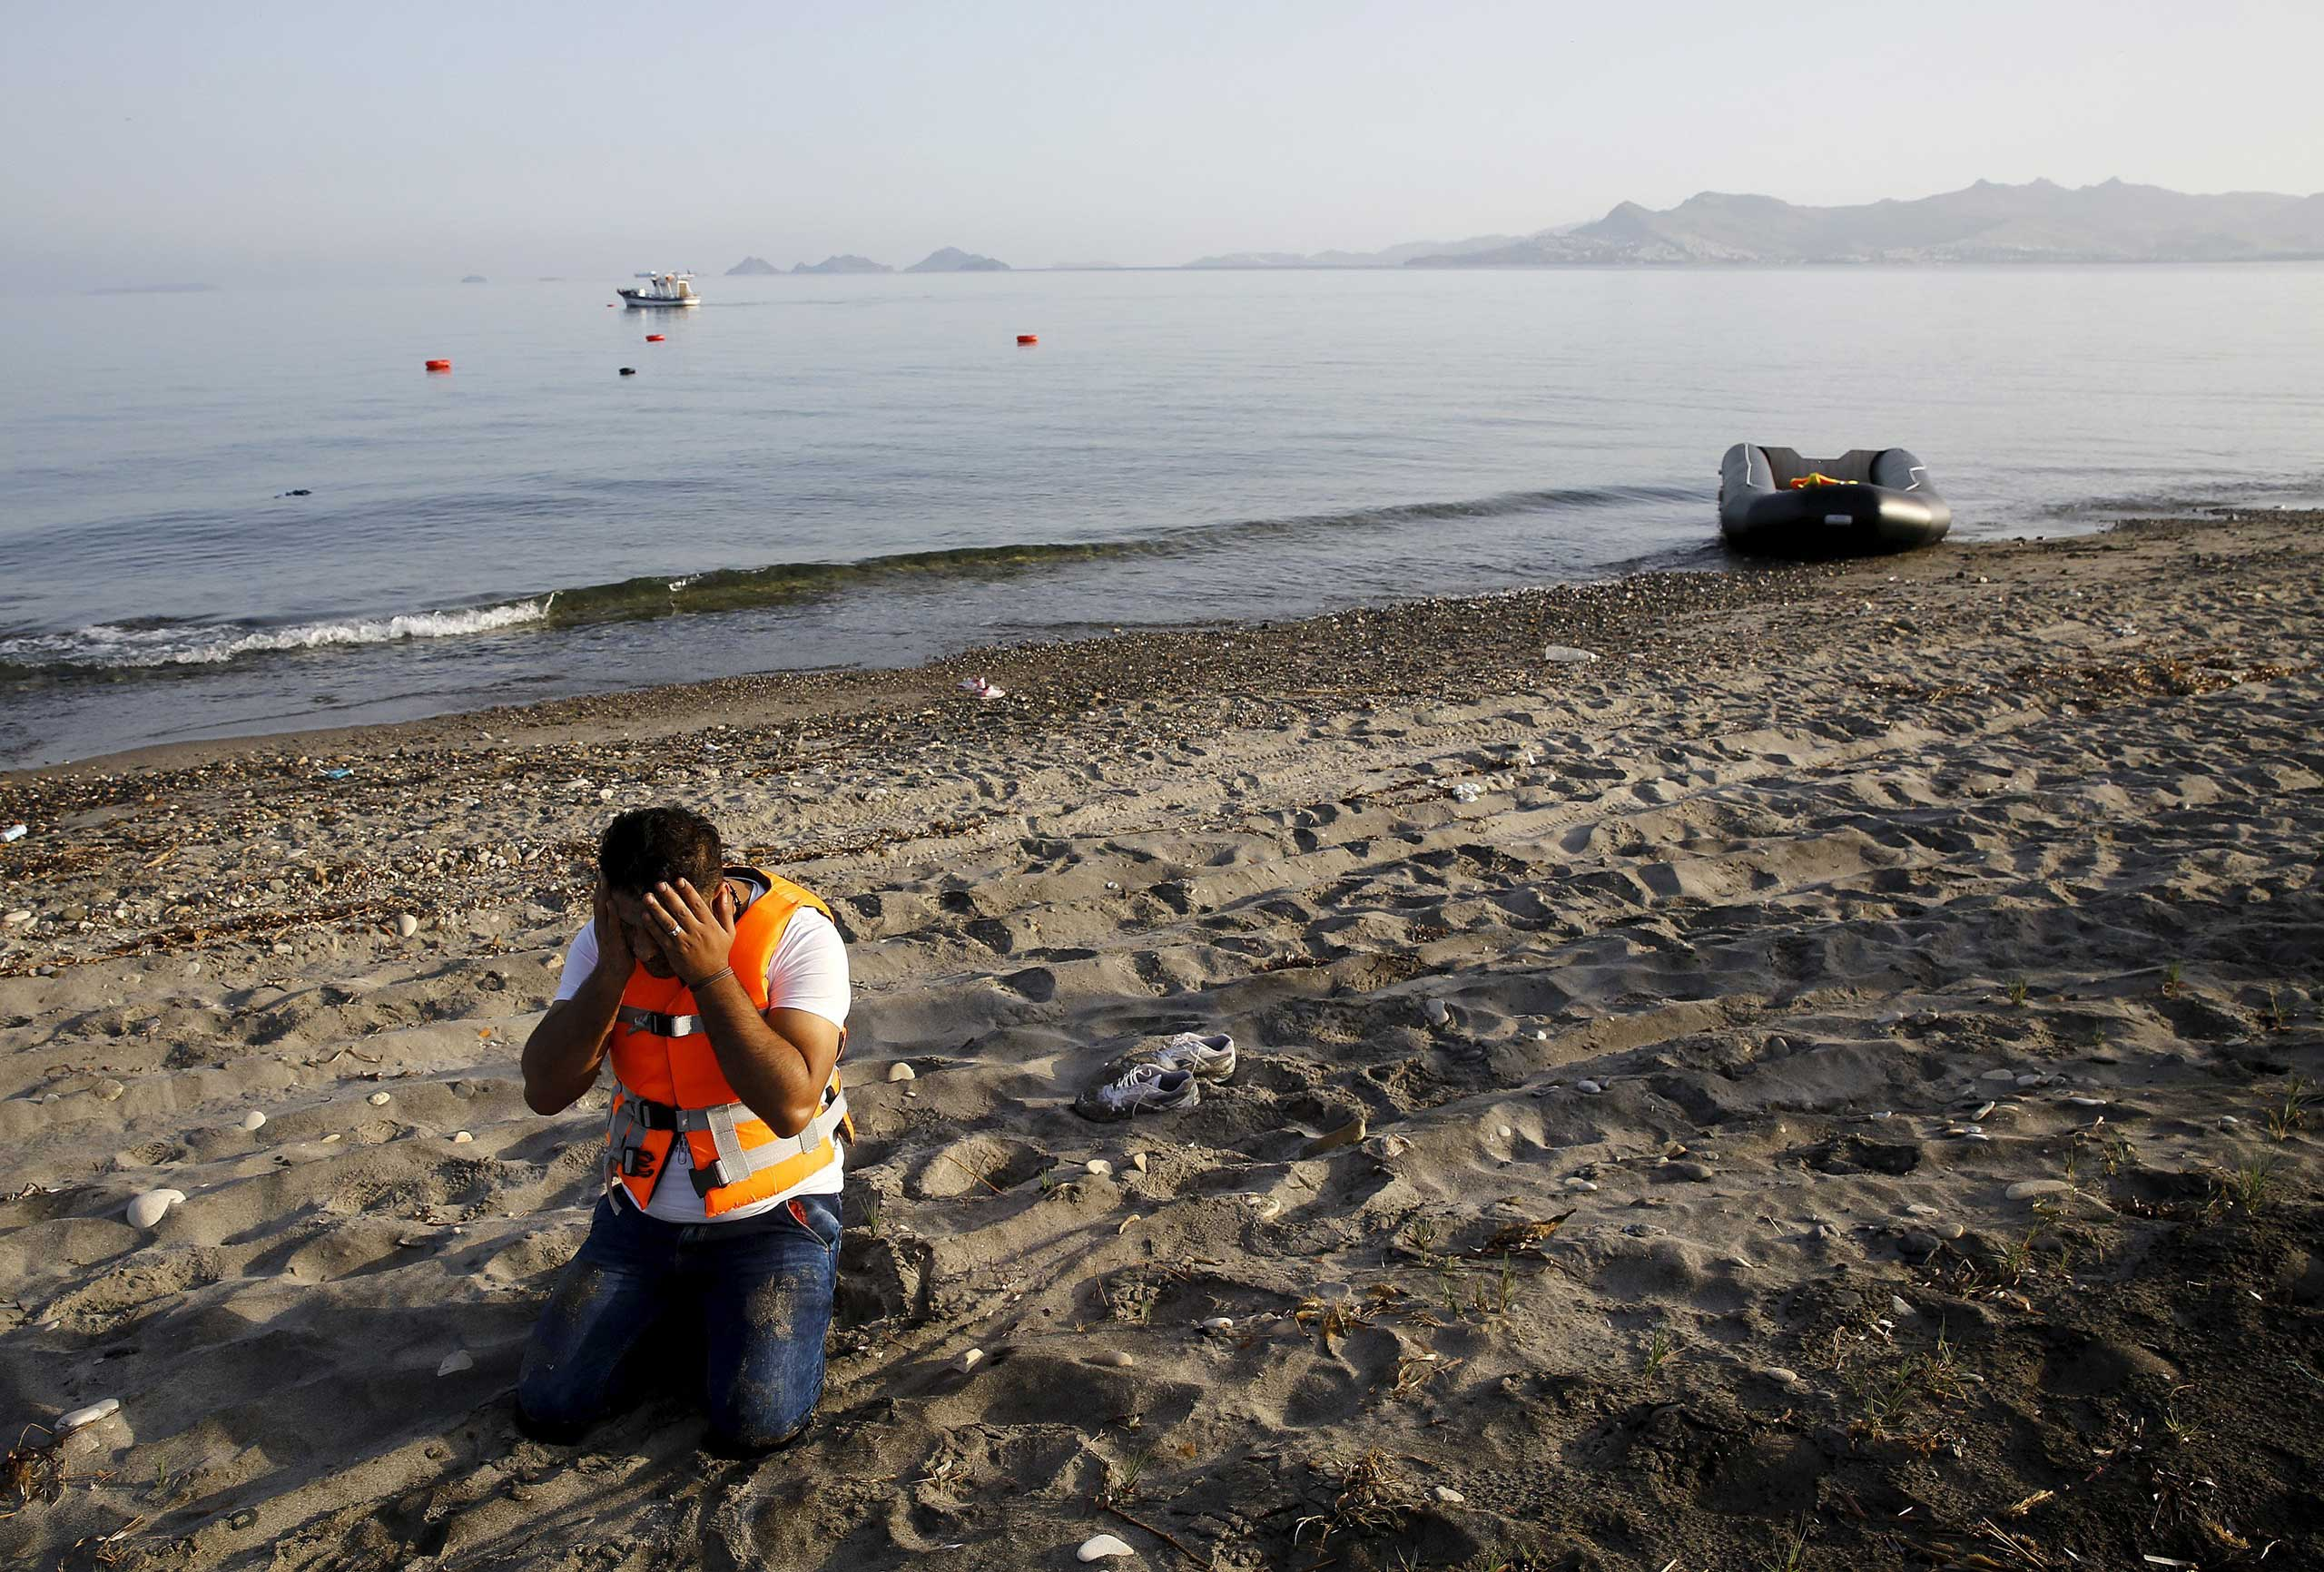 A Syrian refugee prays on the beach after arriving on the Greek island of Kos, via a dinghy boat over part of the Aegean Sea from Turkey to Greece, on May 26, 2015.